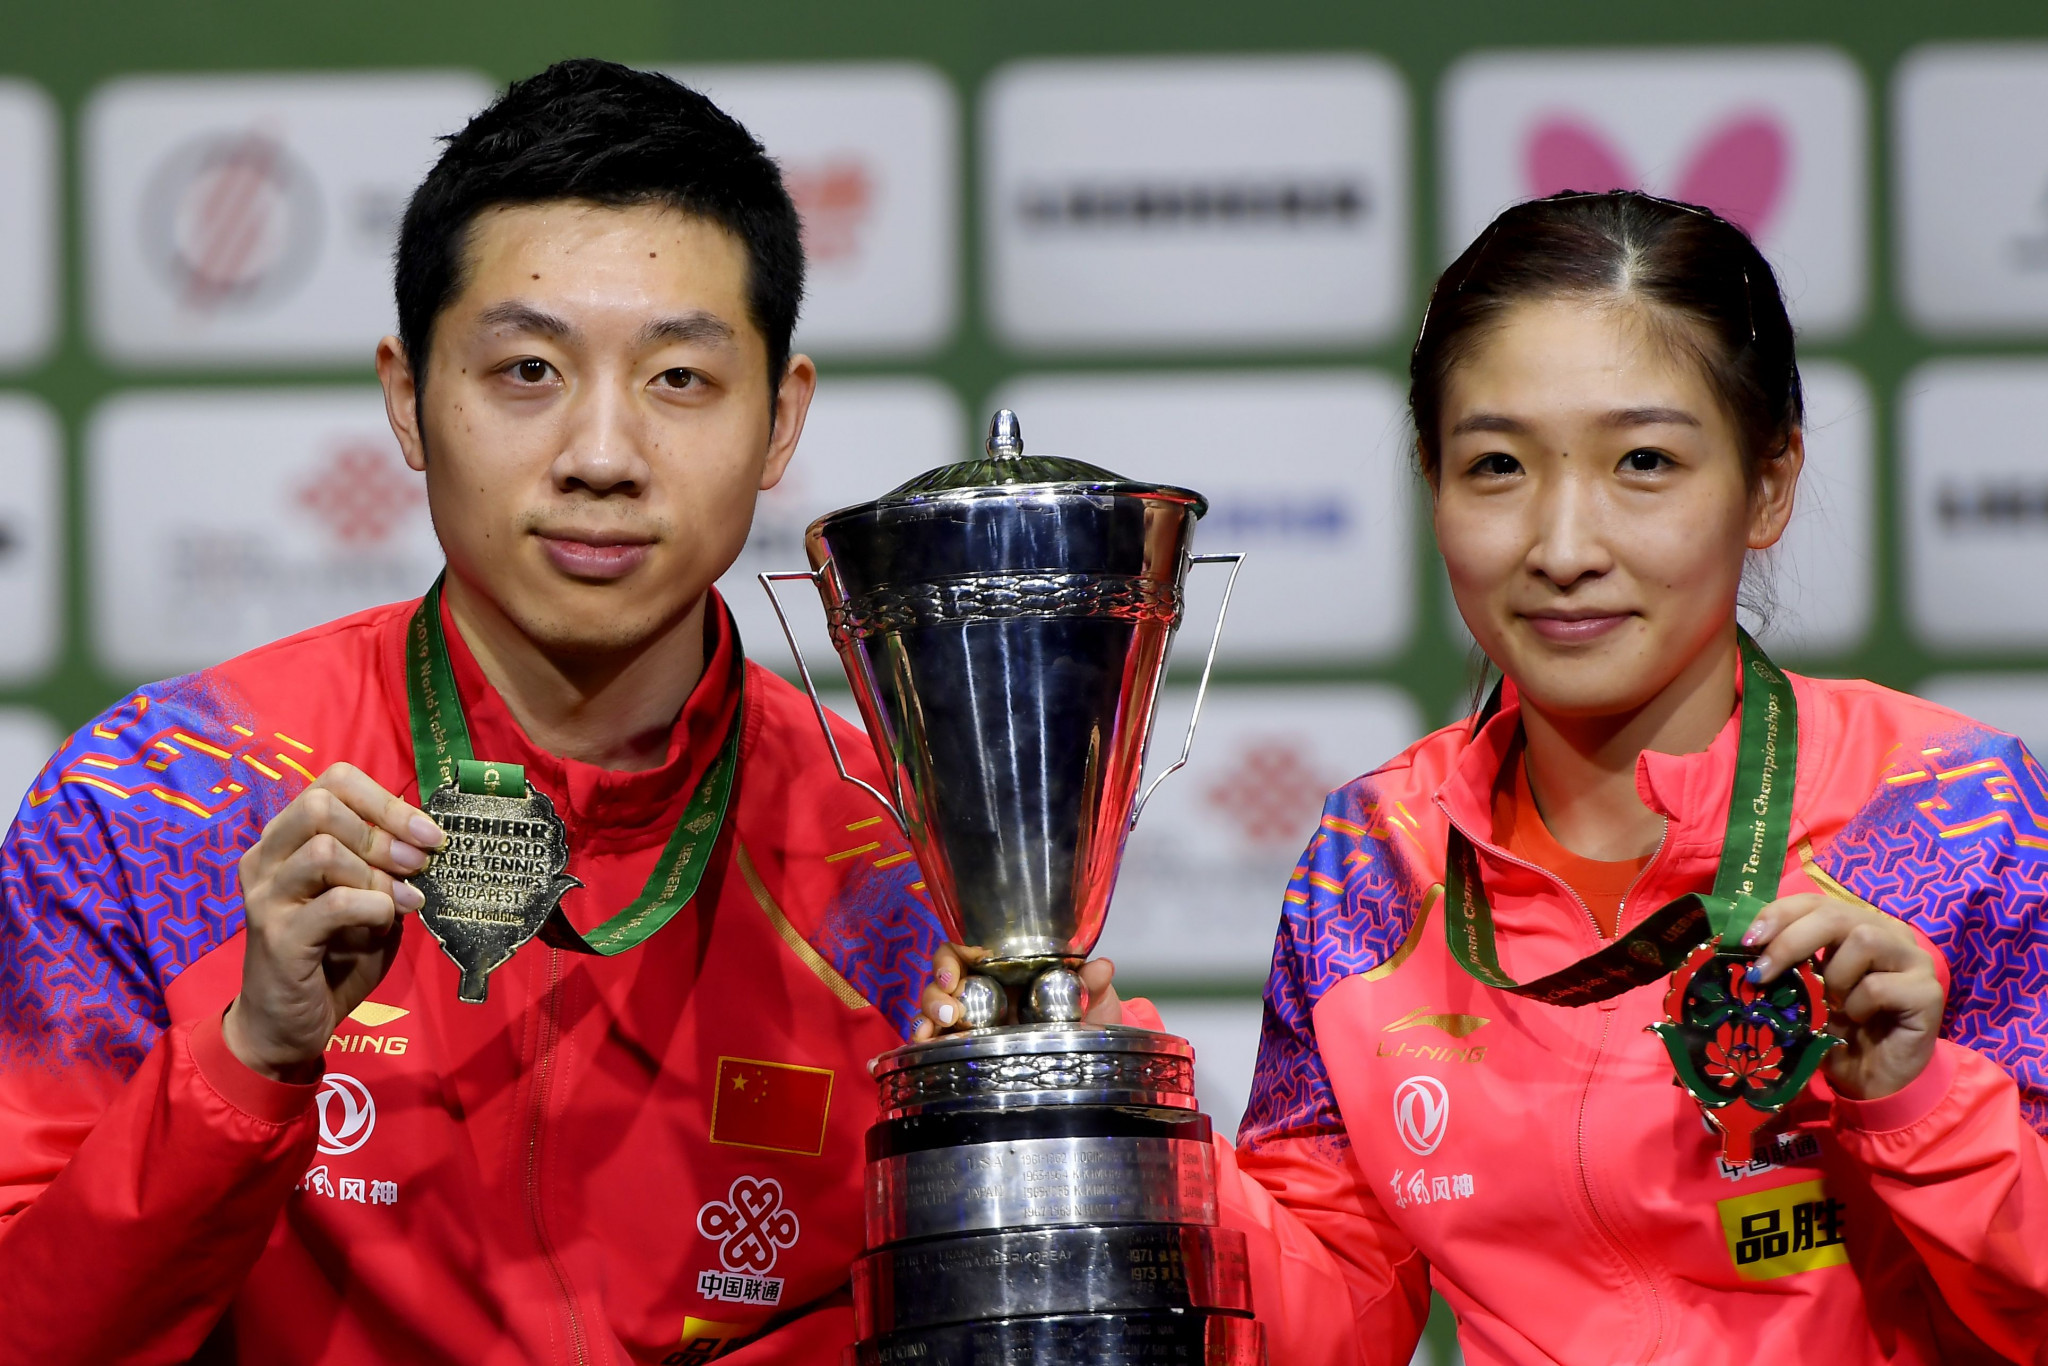 Xu and Liu crowned mixed doubles champions at ITTF World Championships